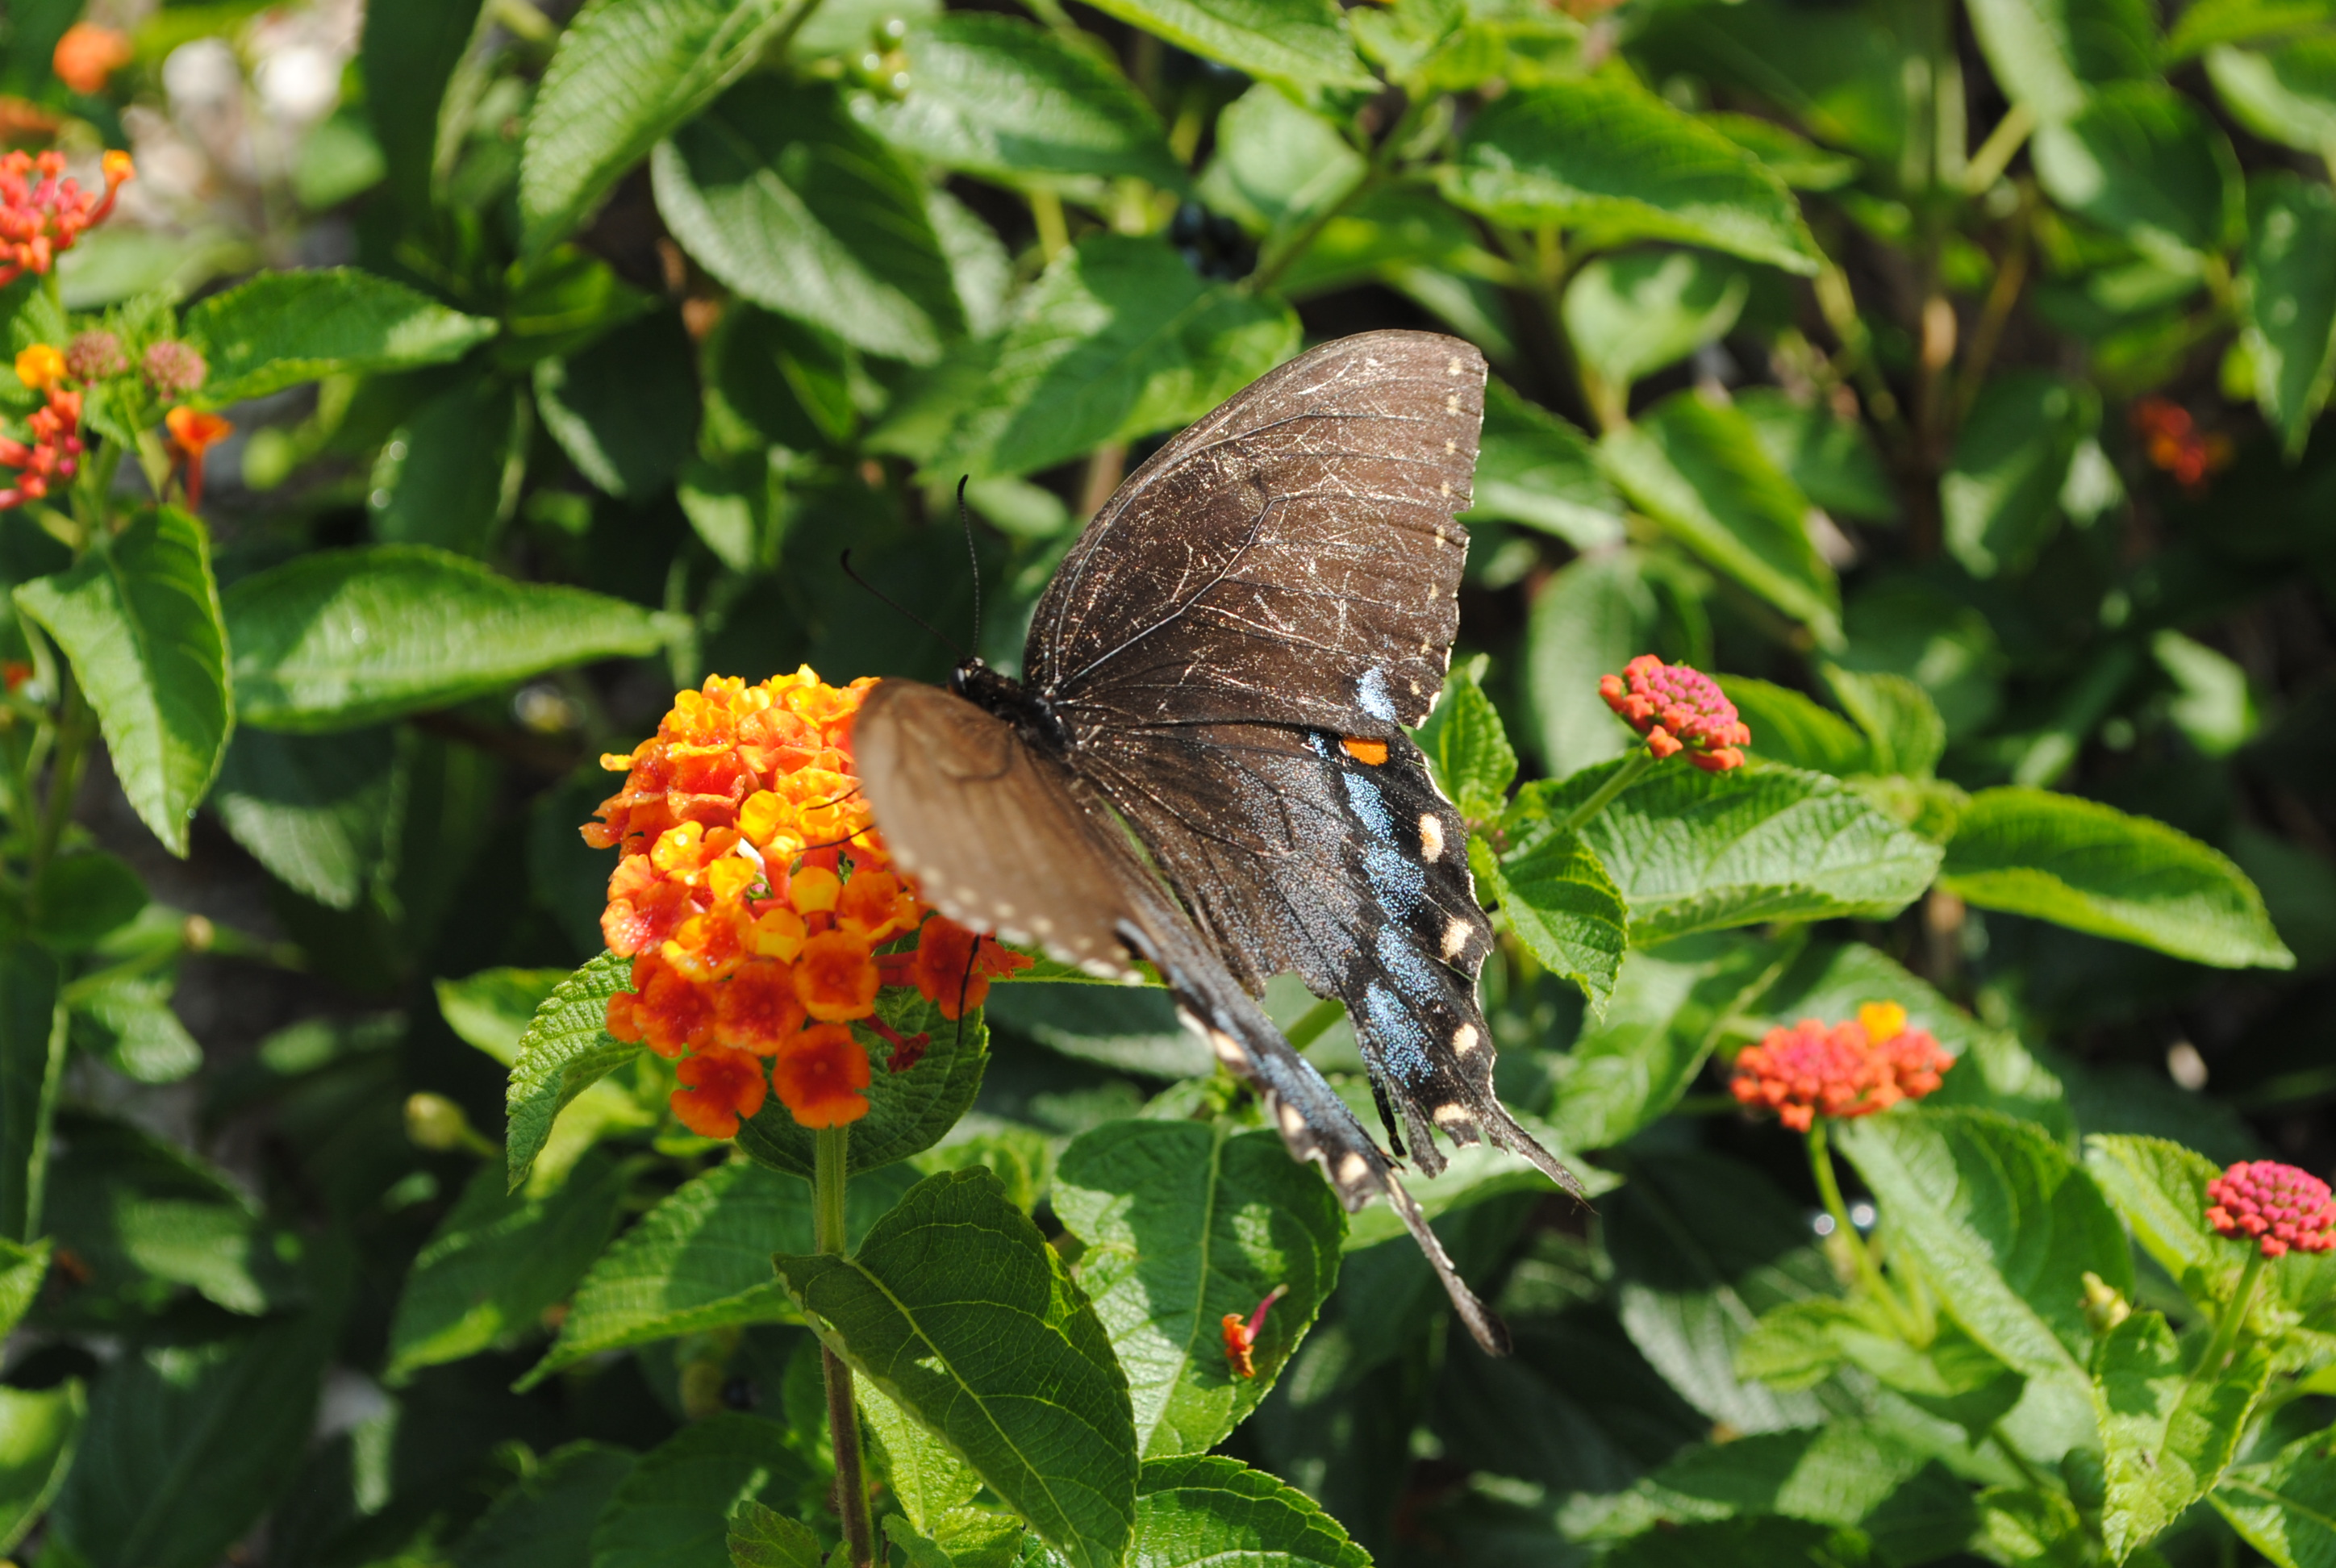 Butterfly in the Garden, Animal, Blooming, Butterfly, Flower, HQ Photo